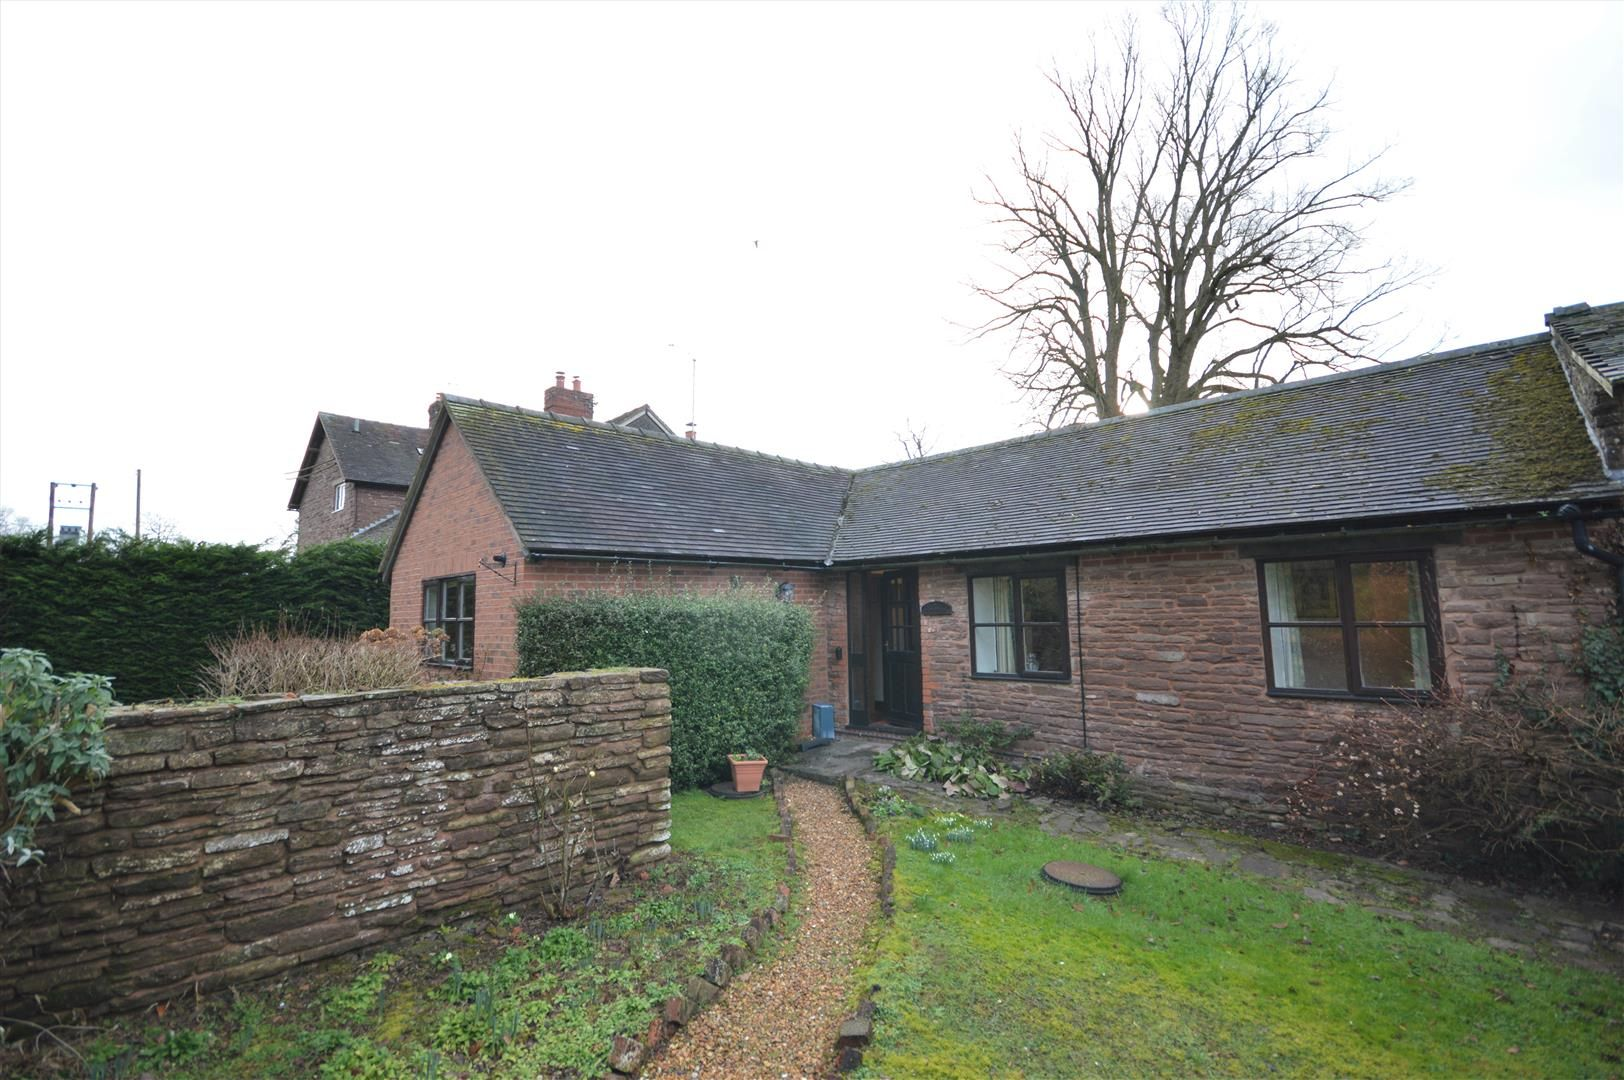 3 bed cottage for sale in Docklow, HR6